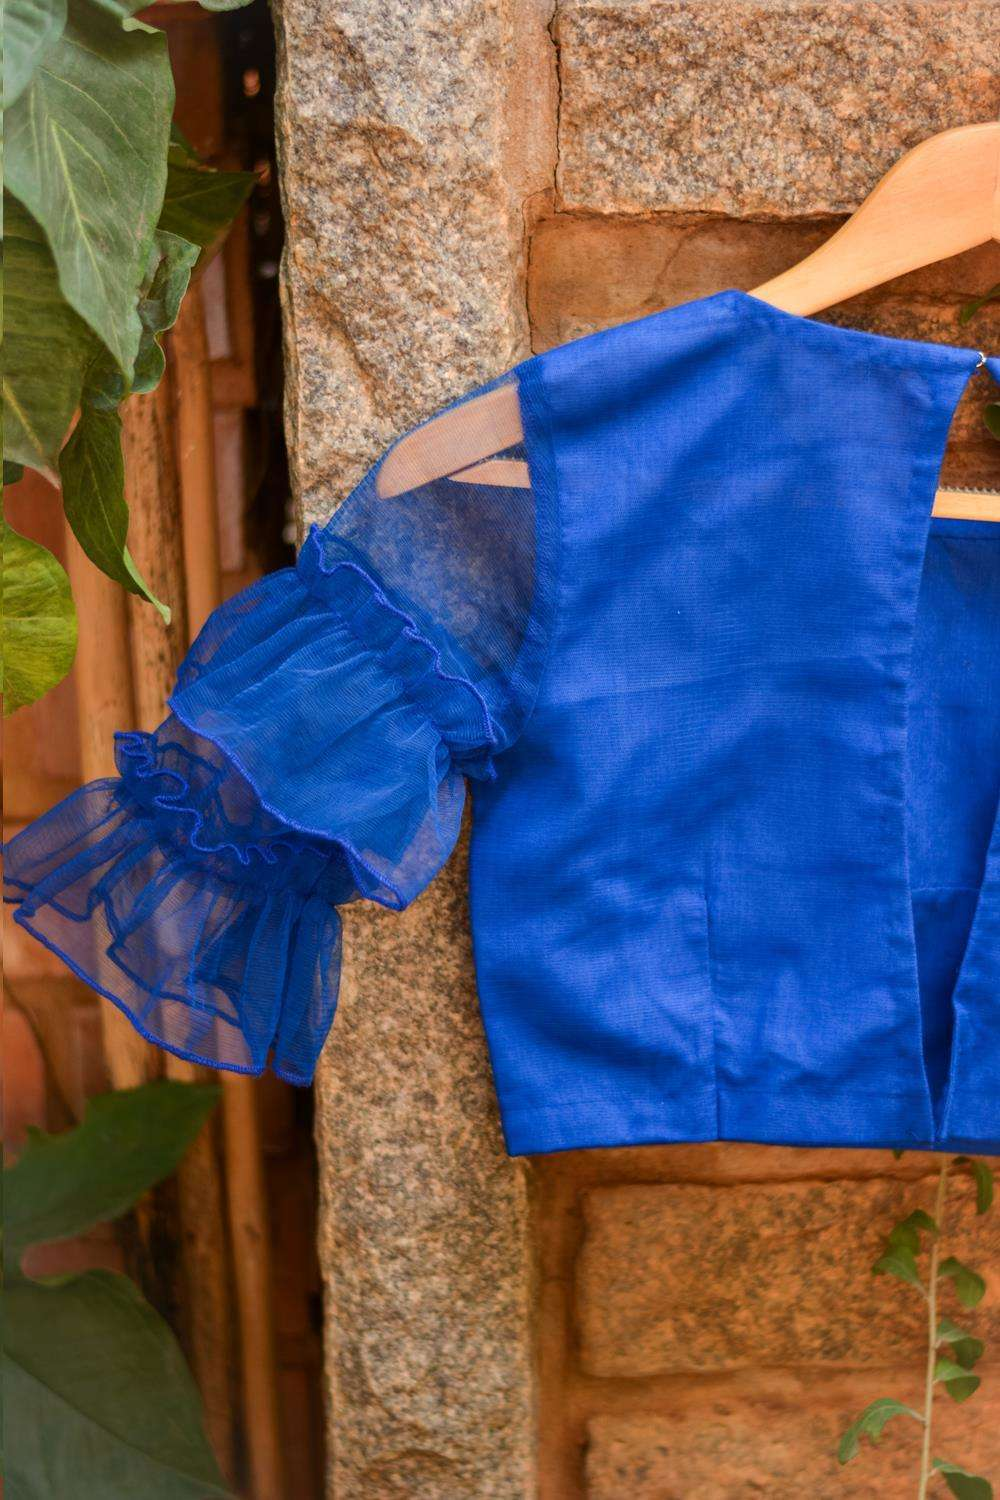 Cobalt blue net blouse with ruffles on sleeves - House of Blouse